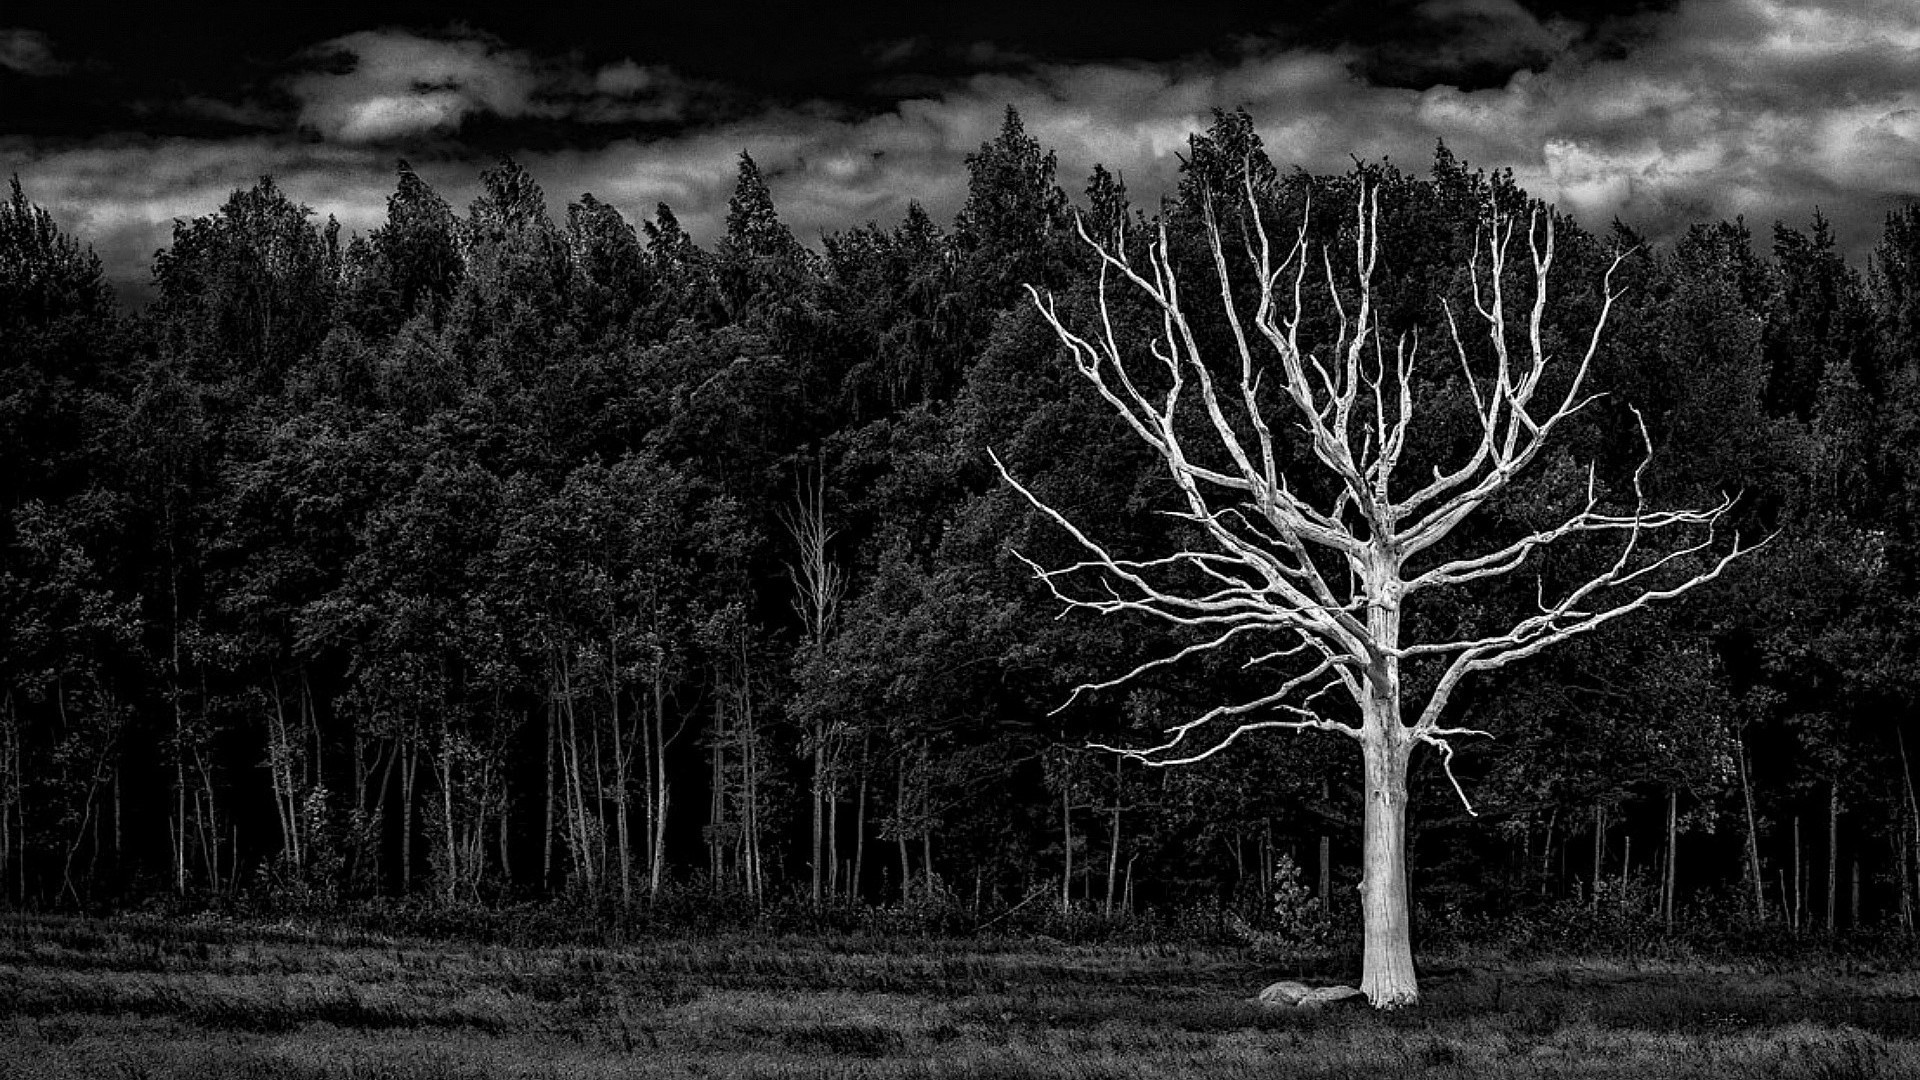 Dark tree background images